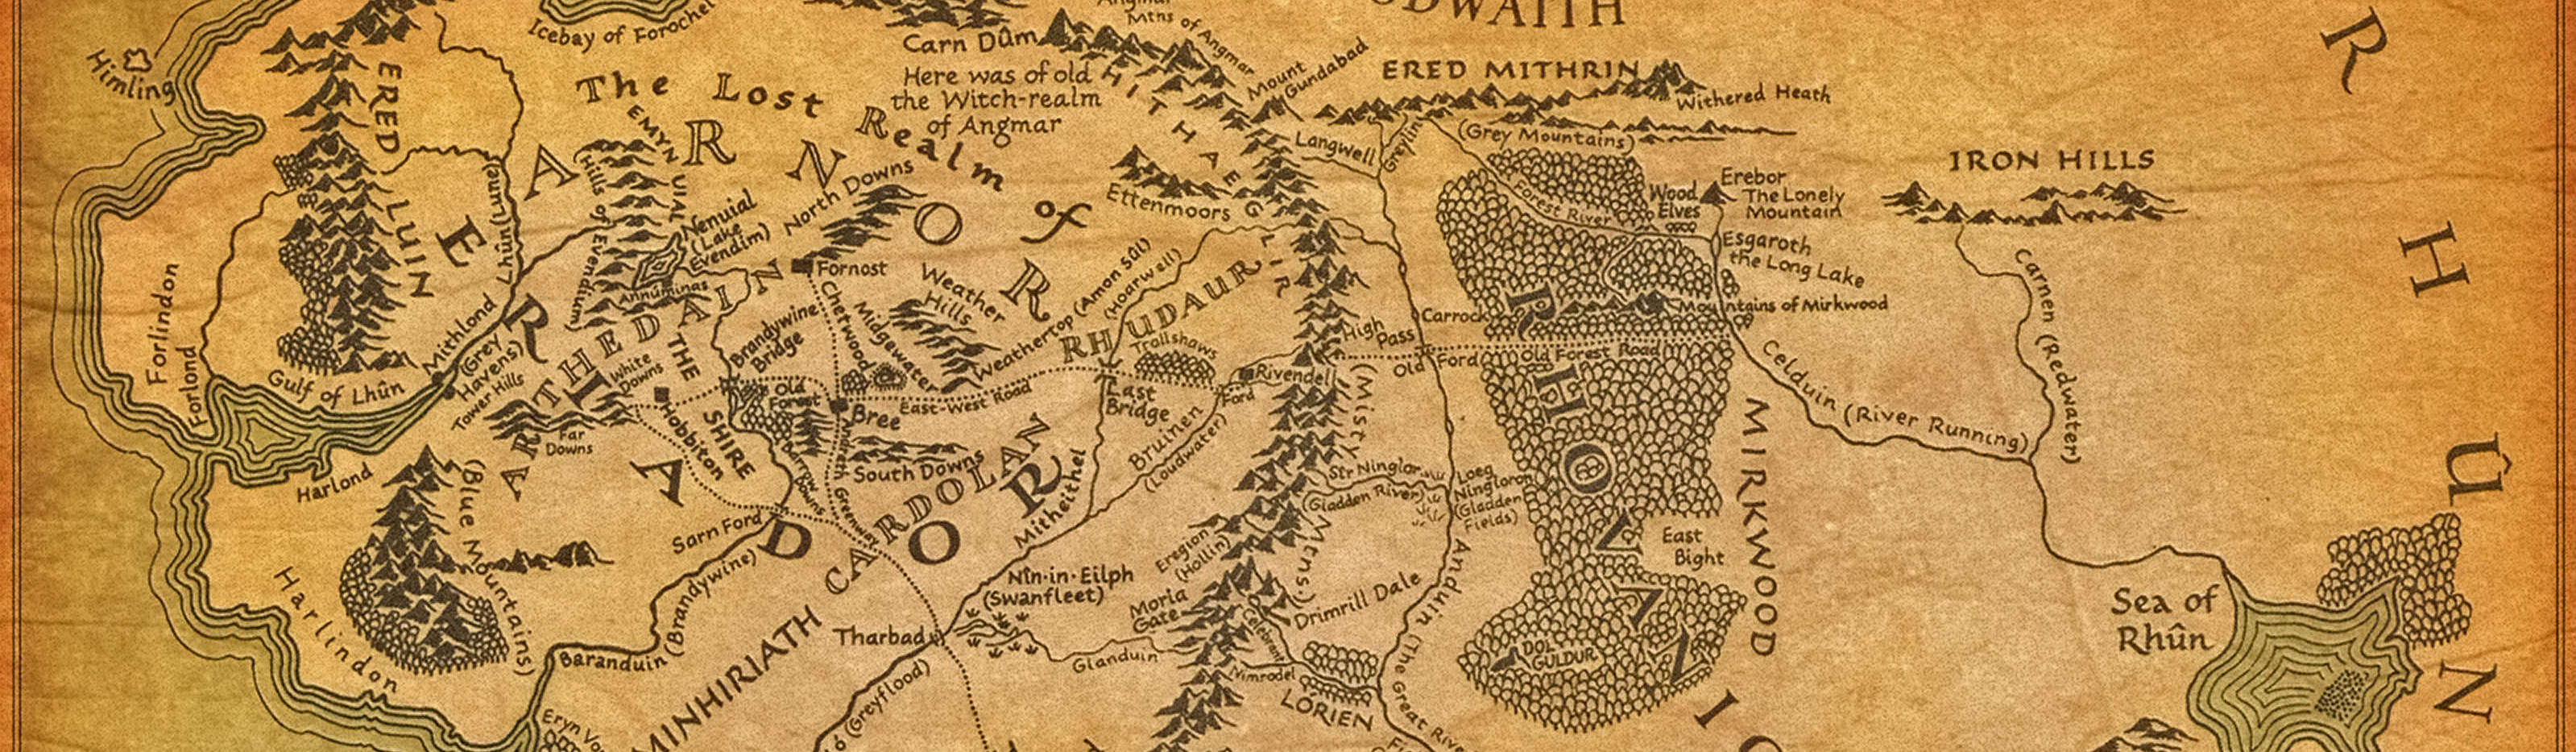 A map of Middle-earth from The Lord of the Rings books.